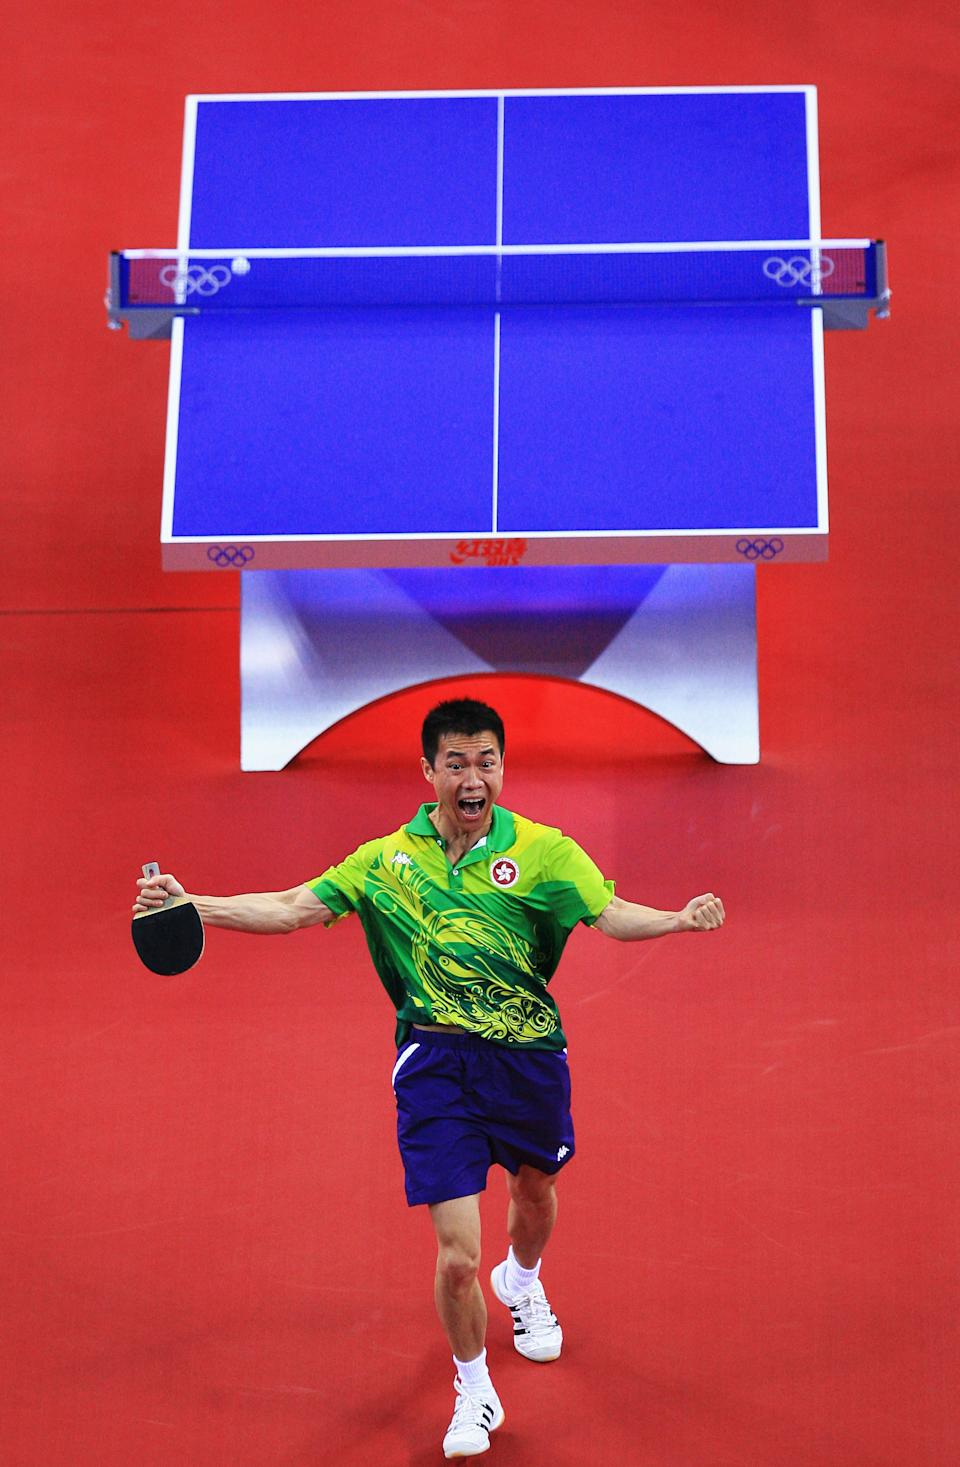 BEIJING - AUGUST 15: Li Ching of Hong Kong China celebrates after defeating Chiang Peng-Lung of Chinese Taipei during a Men's Team Bronze Play-off Round 1 match at the Peking University Gymnasium on Day 7 of the Beijing 2008 Olympic Games on August 15, 2008 in Beijing, China. (Photo by Jamie Squire/Getty Images)